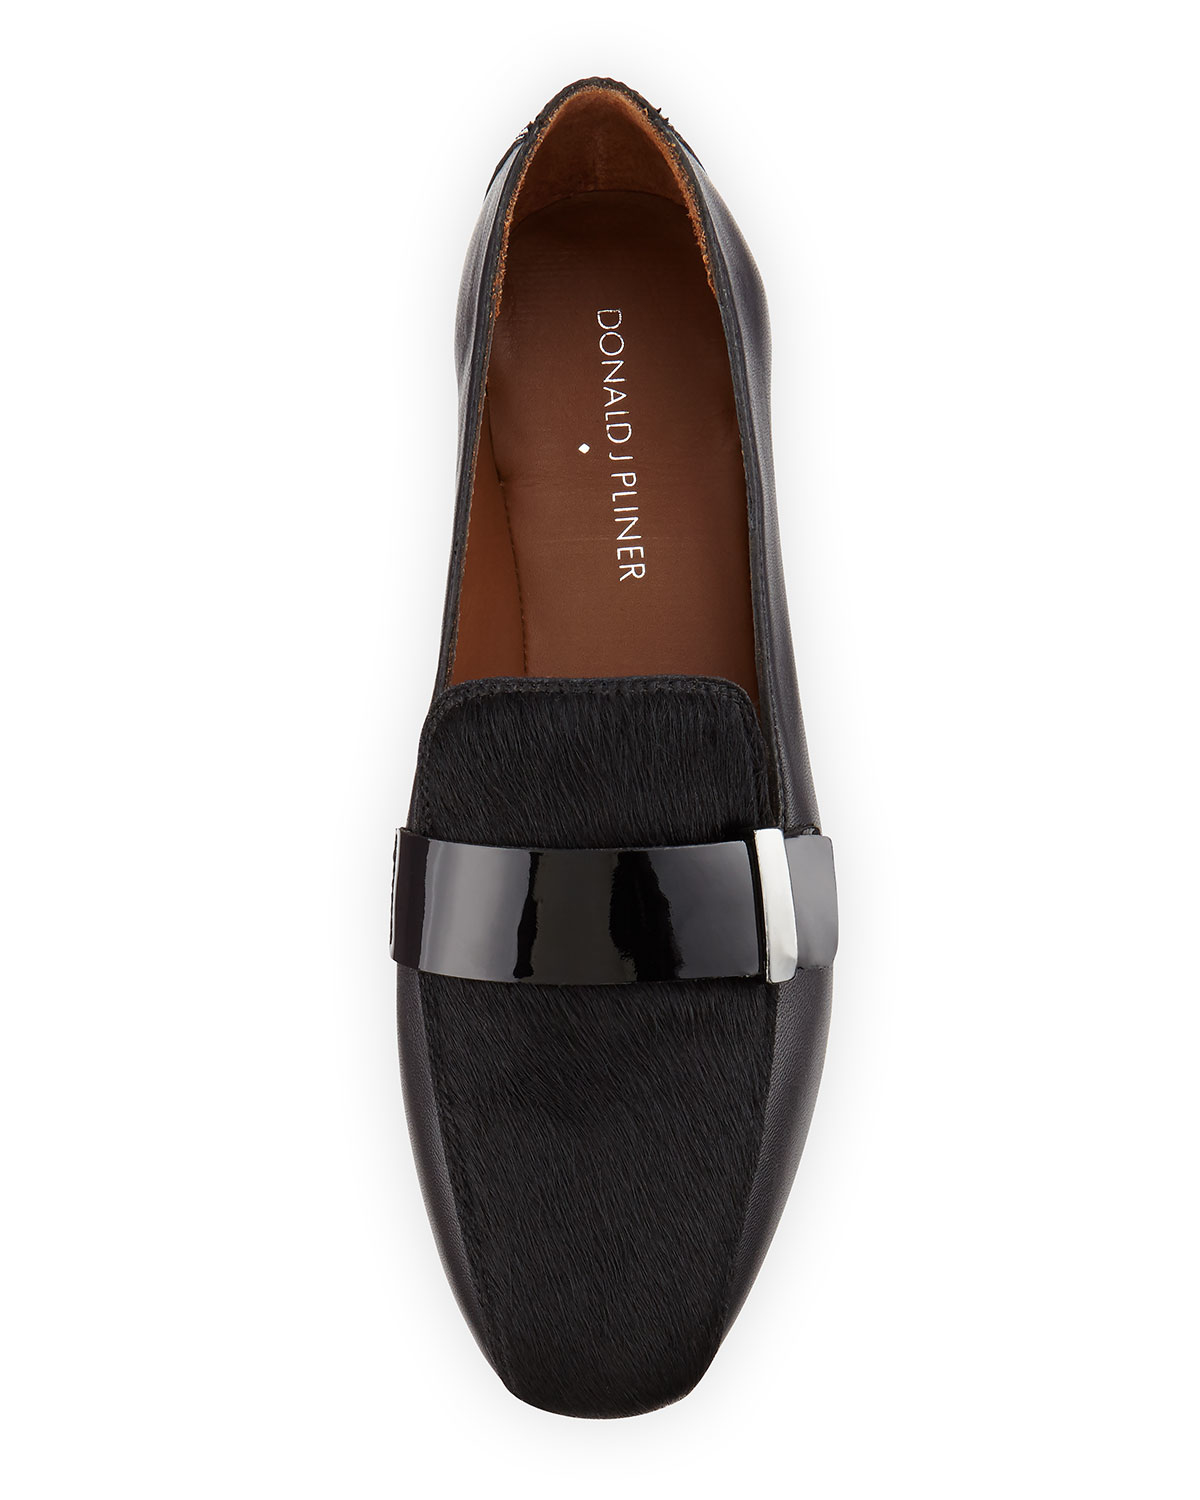 2b83fcc3bb5 Lyst - Donald J Pliner Elli Leather and Calf-Hair Loafers in Black